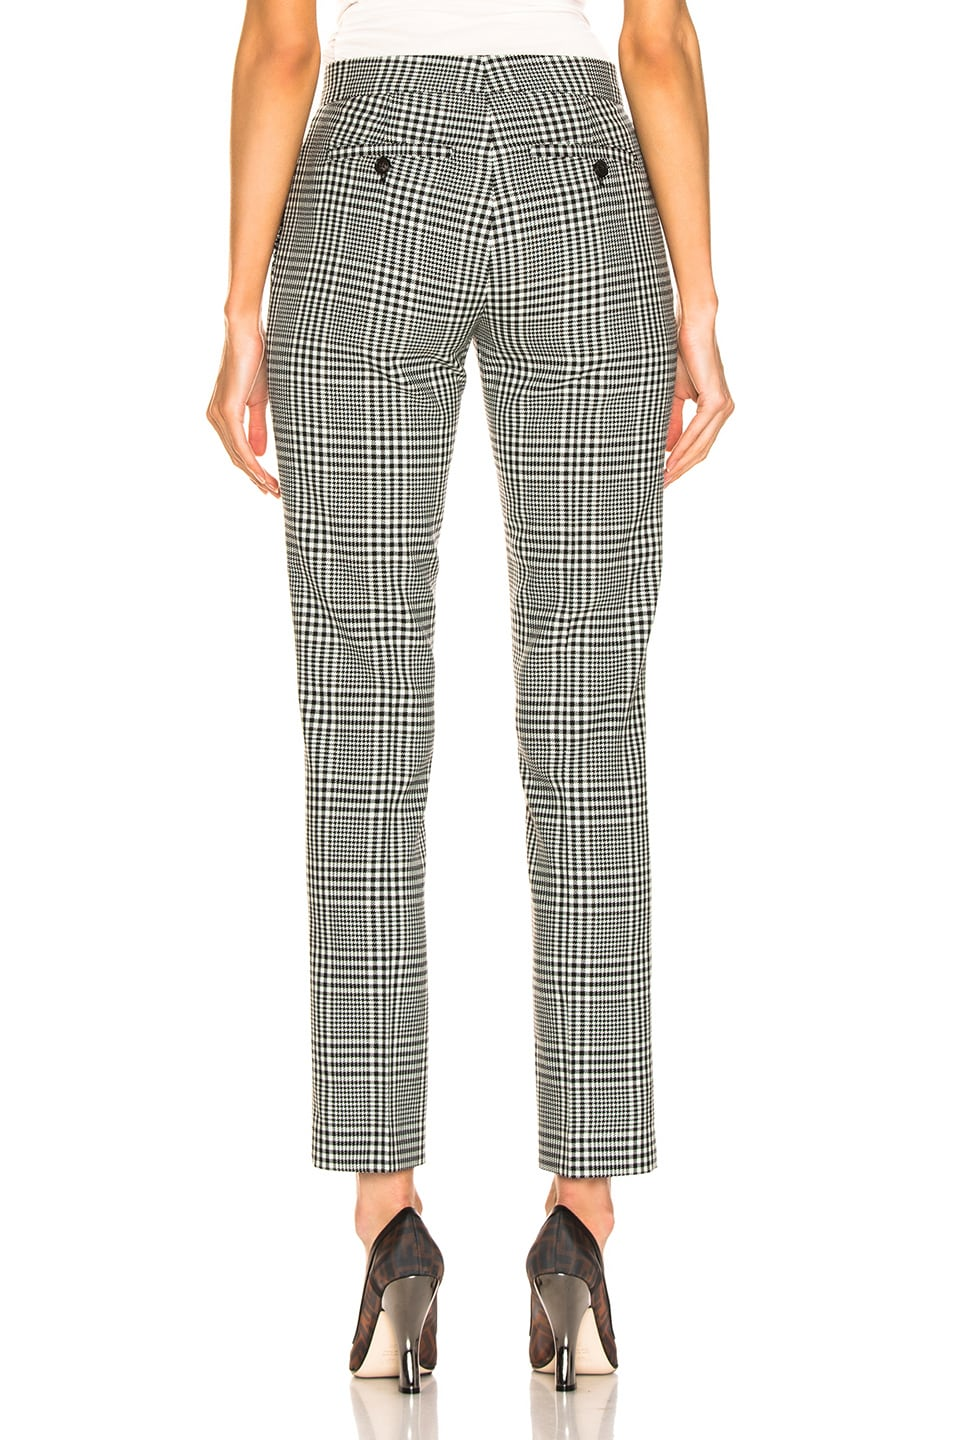 Image 3 of Burberry Hanover Pant in Mist Green Chalk